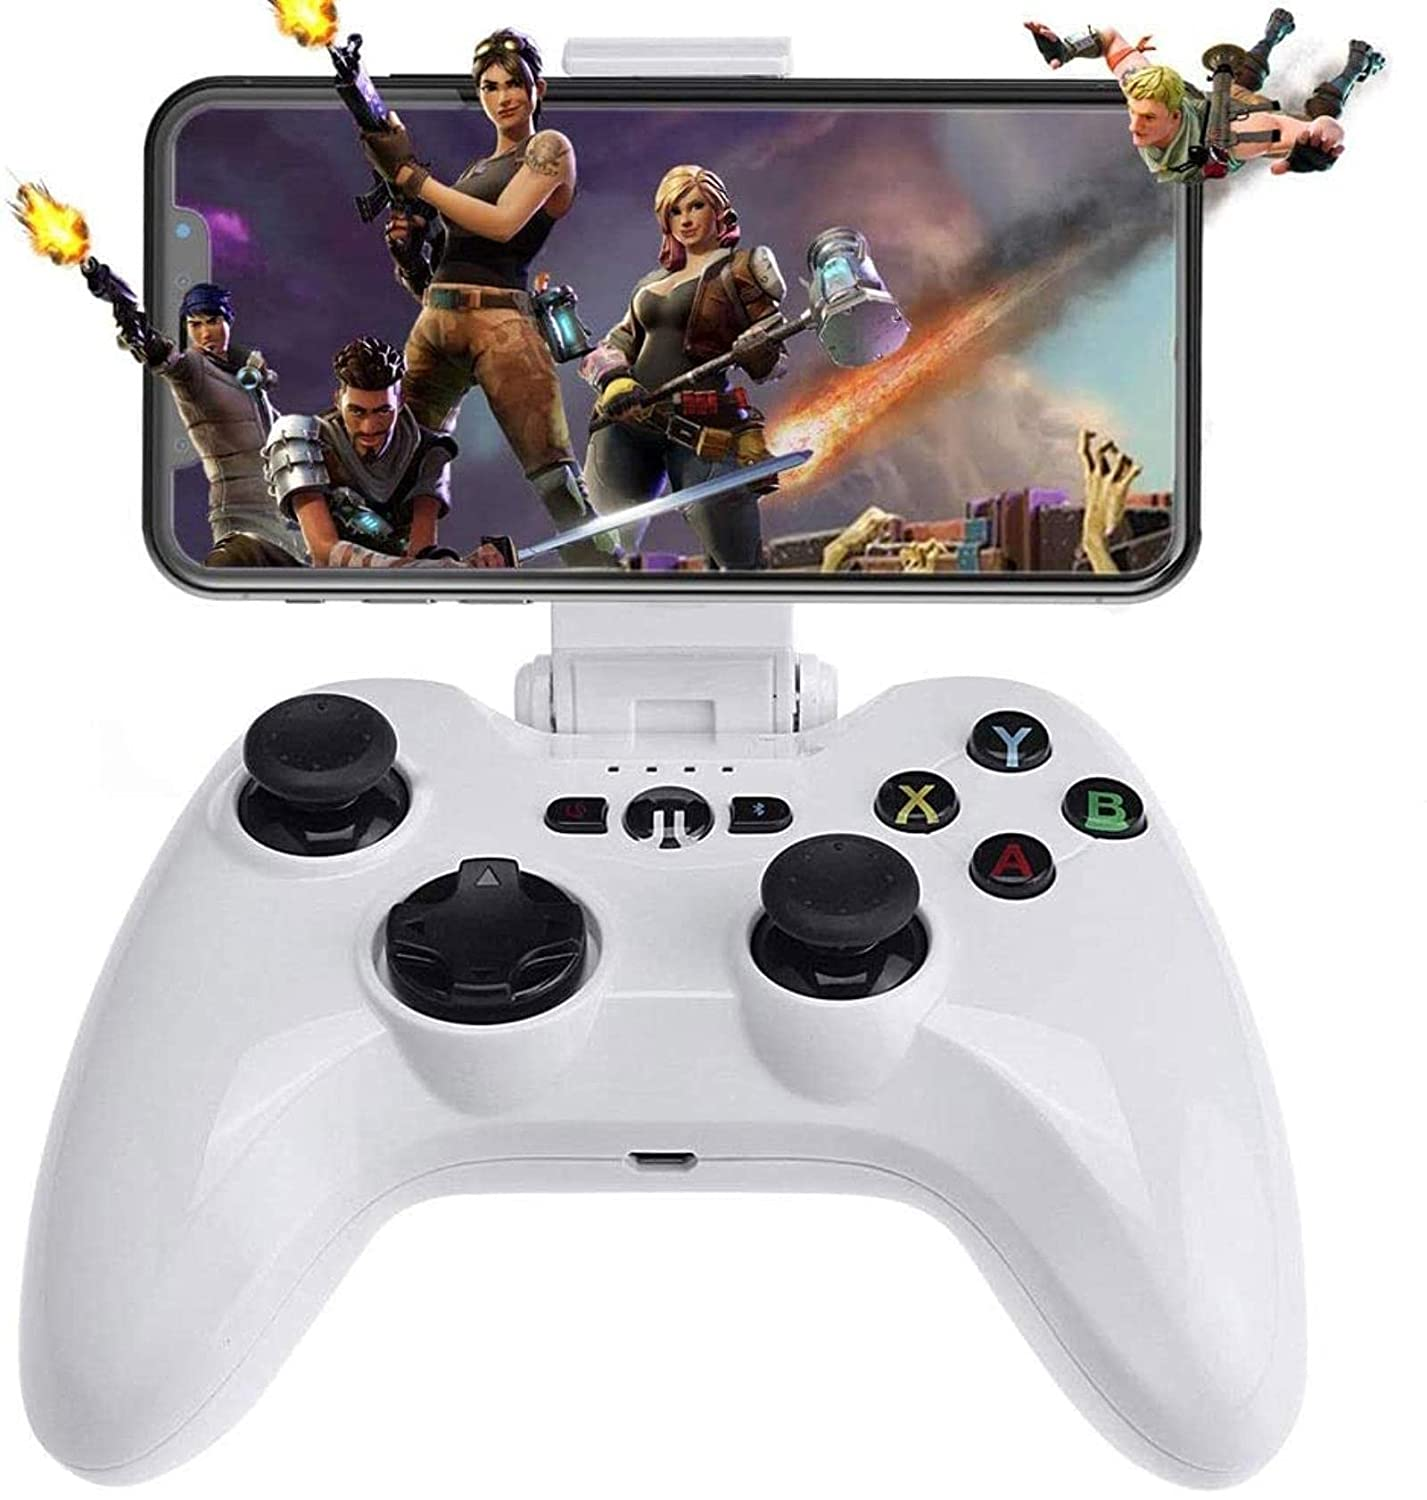 Popular product Mobile Gaming Controller-Mobile Game Jo Controller iOS Max 52% OFF Wireless